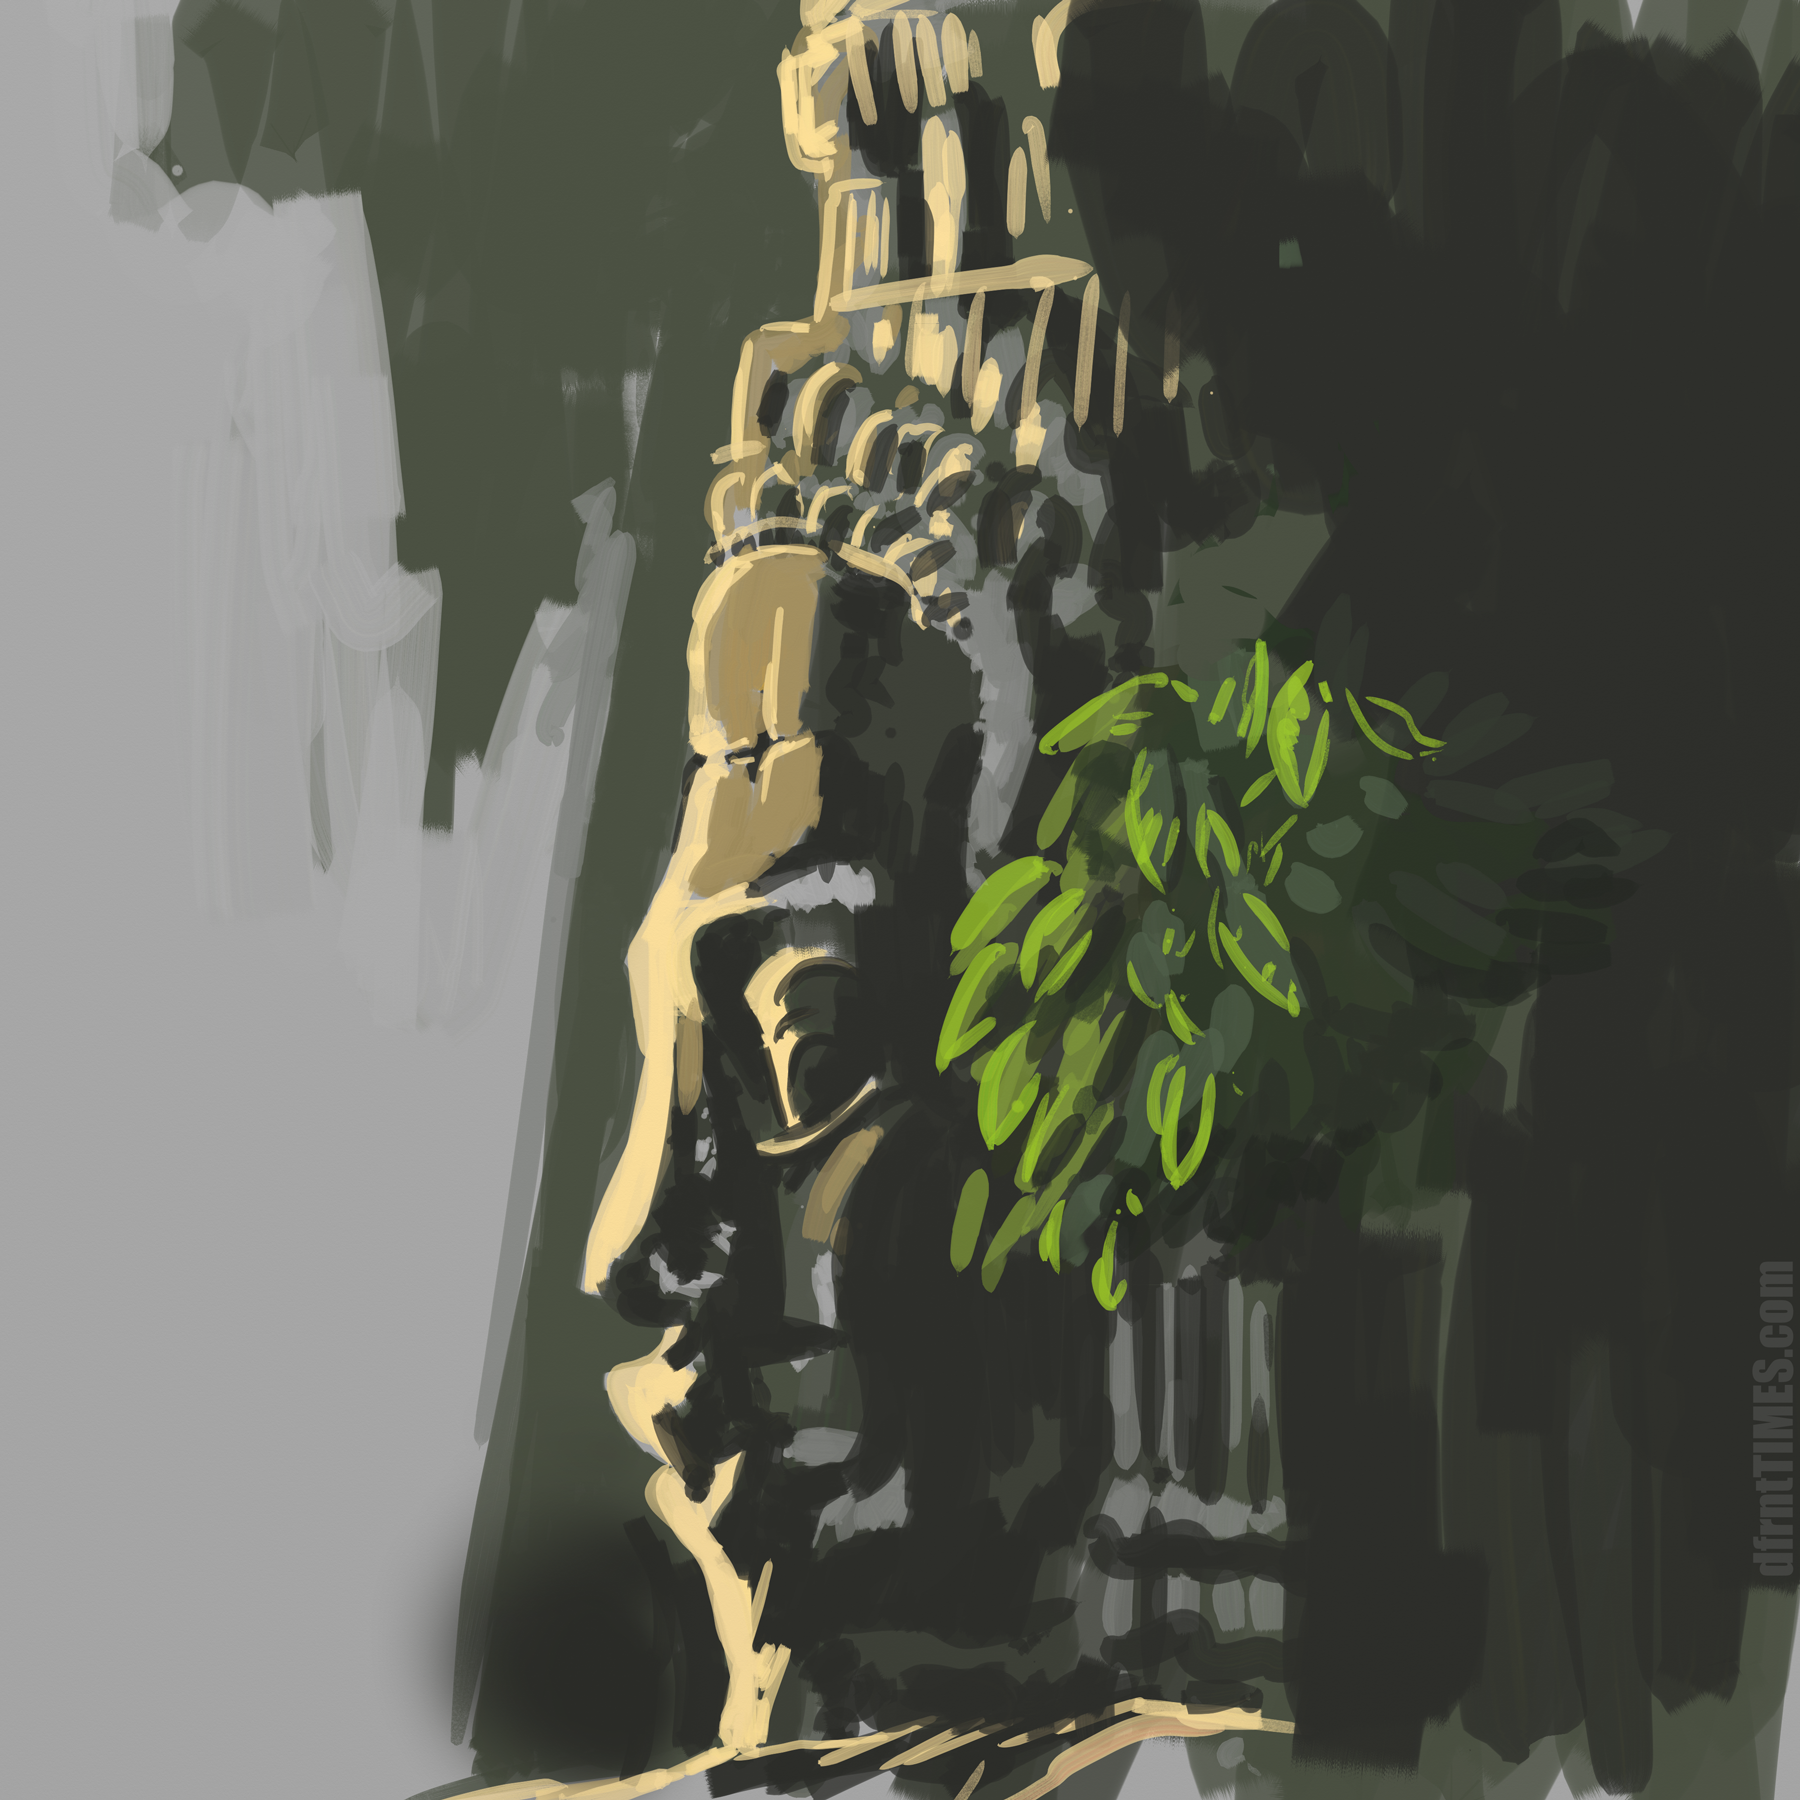 SKETCHY TUESDAYS - Tuesday nights is duo streaming with fellow artist Dante / a.k.a Artismyvoice on twitch. We mostly focus on studies, and encourage our viewers to join in and draw with us. Each week we focus on a new topic, tonight was 15-20 min landscapes. Check us out next Tuesday 6-8pm EST, on my Twitch channel dfrntTIMES-M